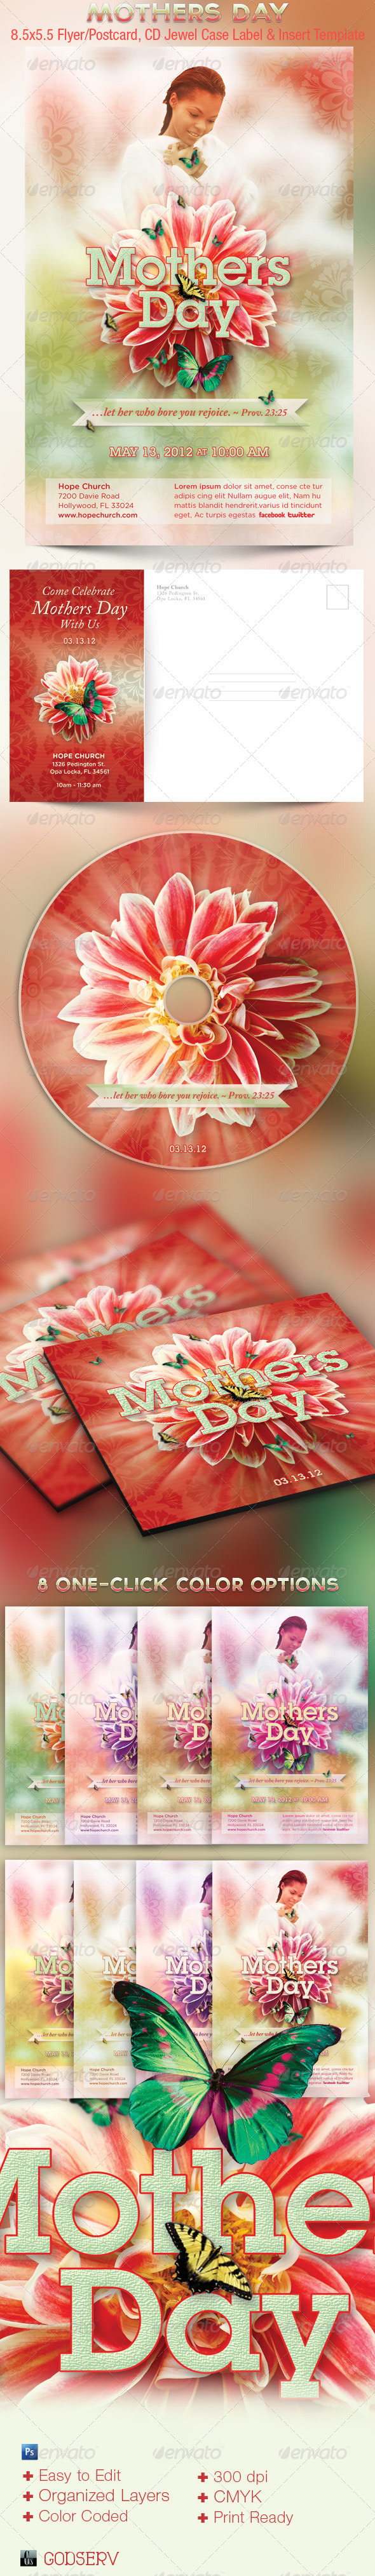 Mothers Day Church Flyer, Mailer and CD Template  - Church Flyers